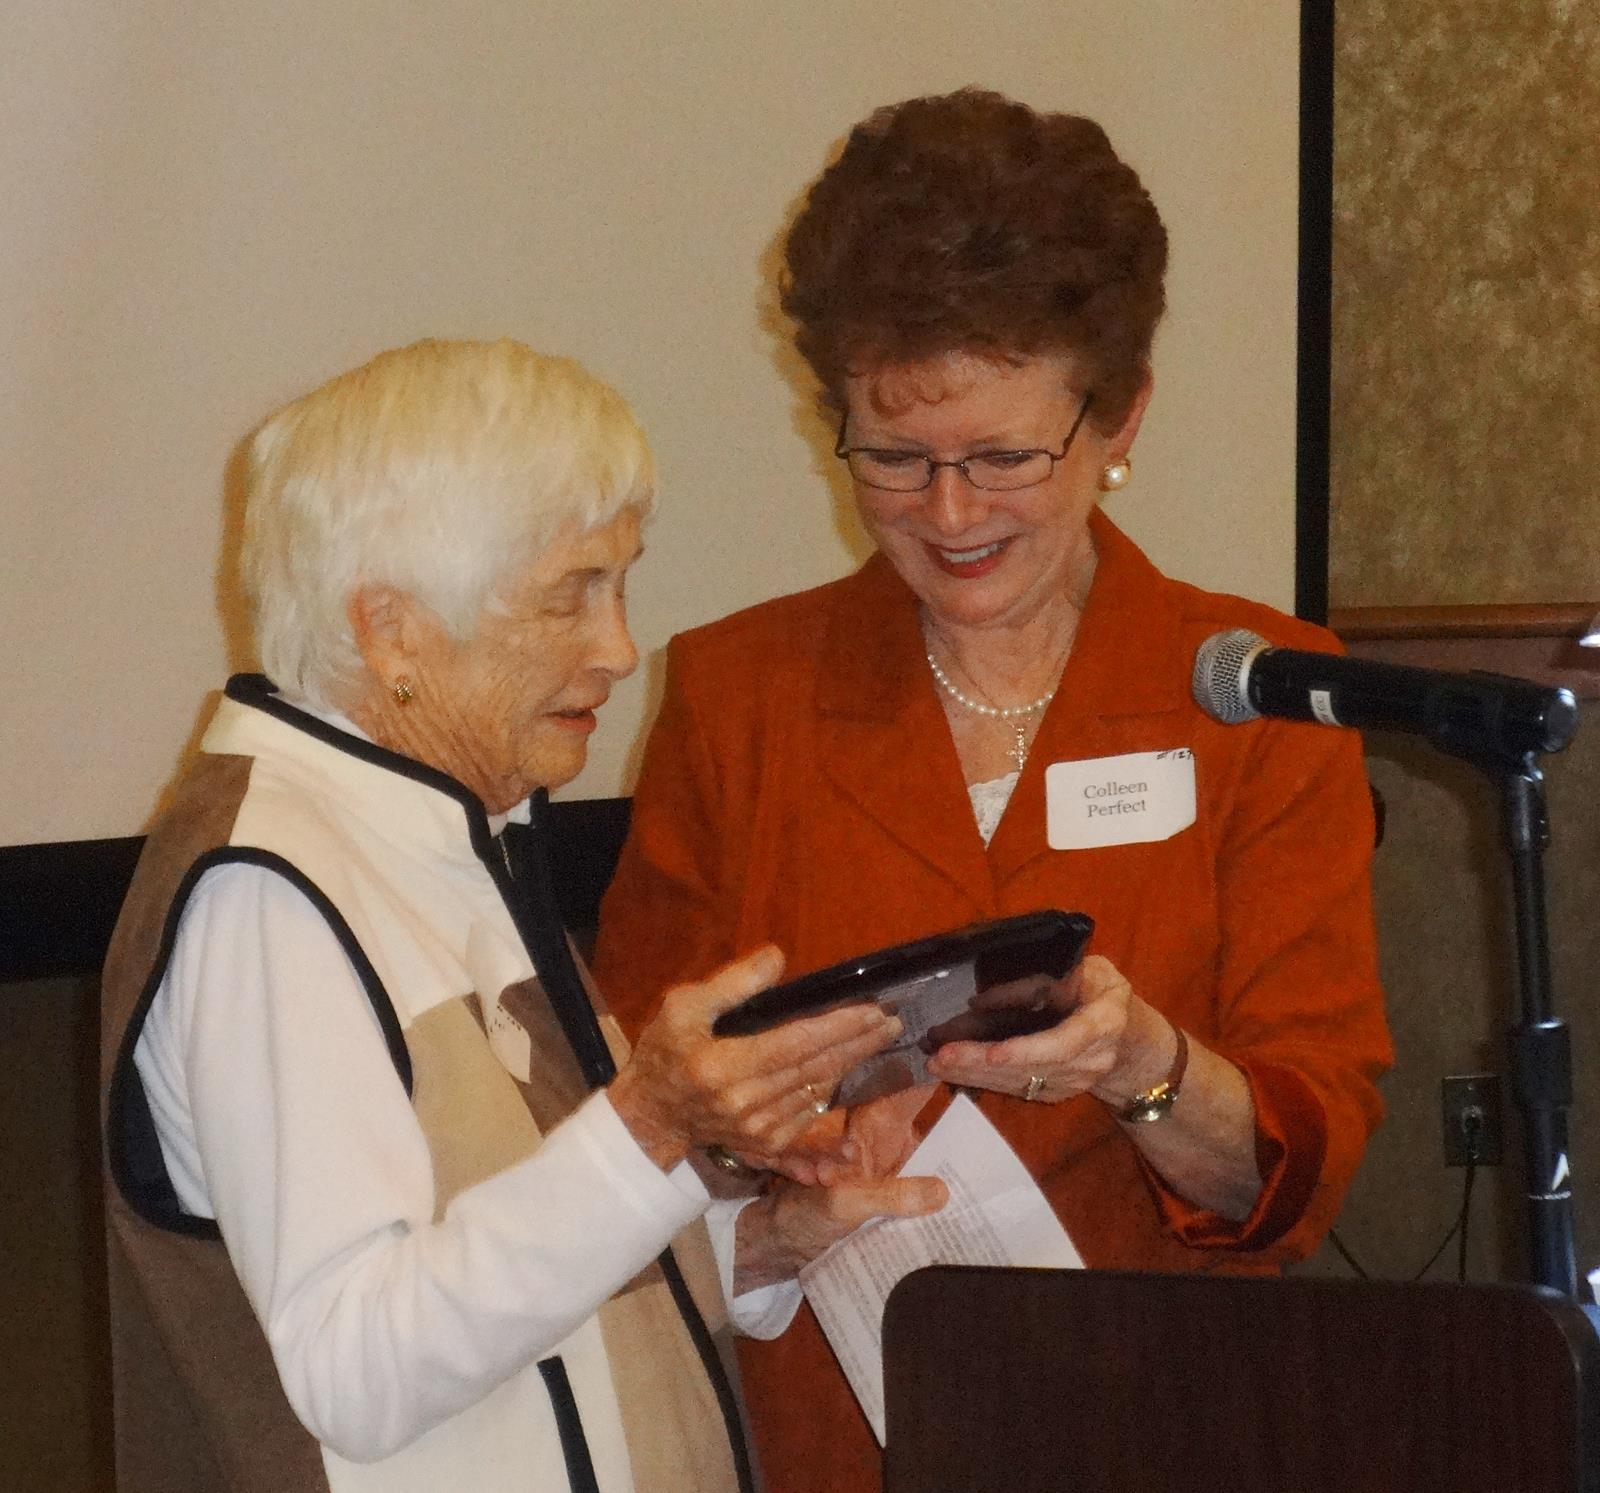 Colleen Perfect, President of CPO presenting Marlene Reid with the 2015 Arthur A. Herkenhoff award.